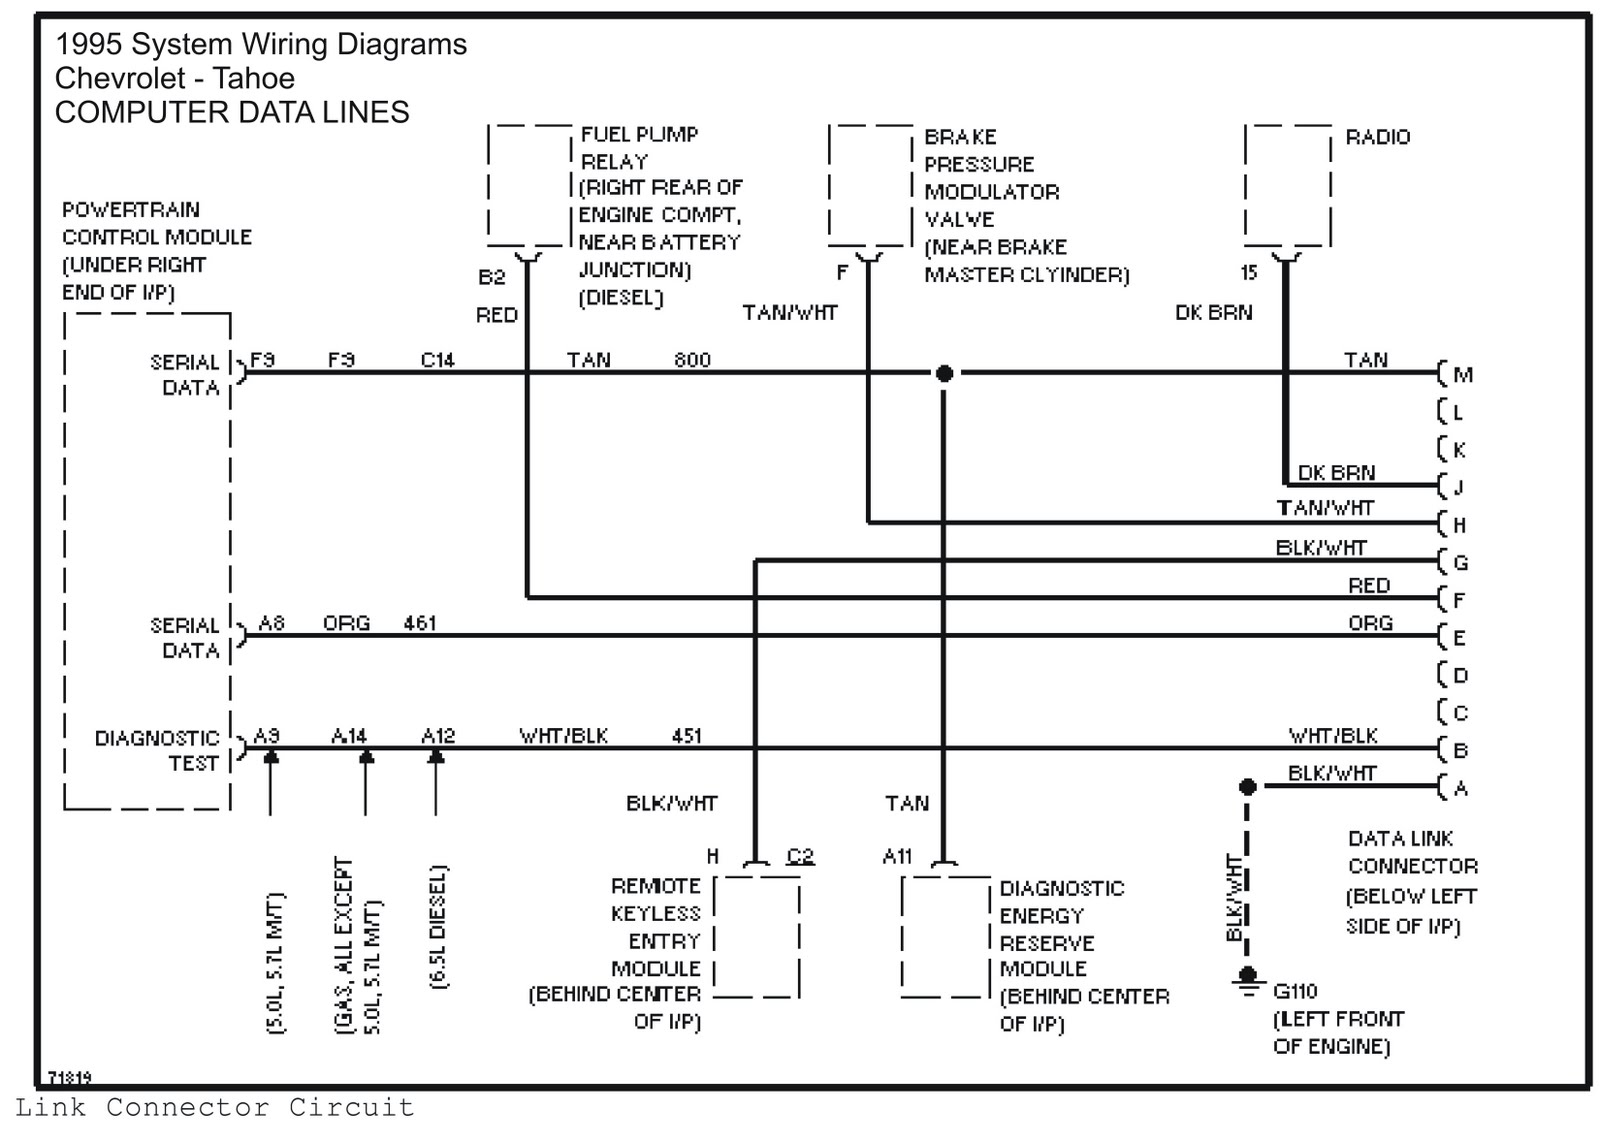 96 tahoe 02 wiring diagram wiring diagram 96 tahoe engine diagram [ 1600 x 1141 Pixel ]